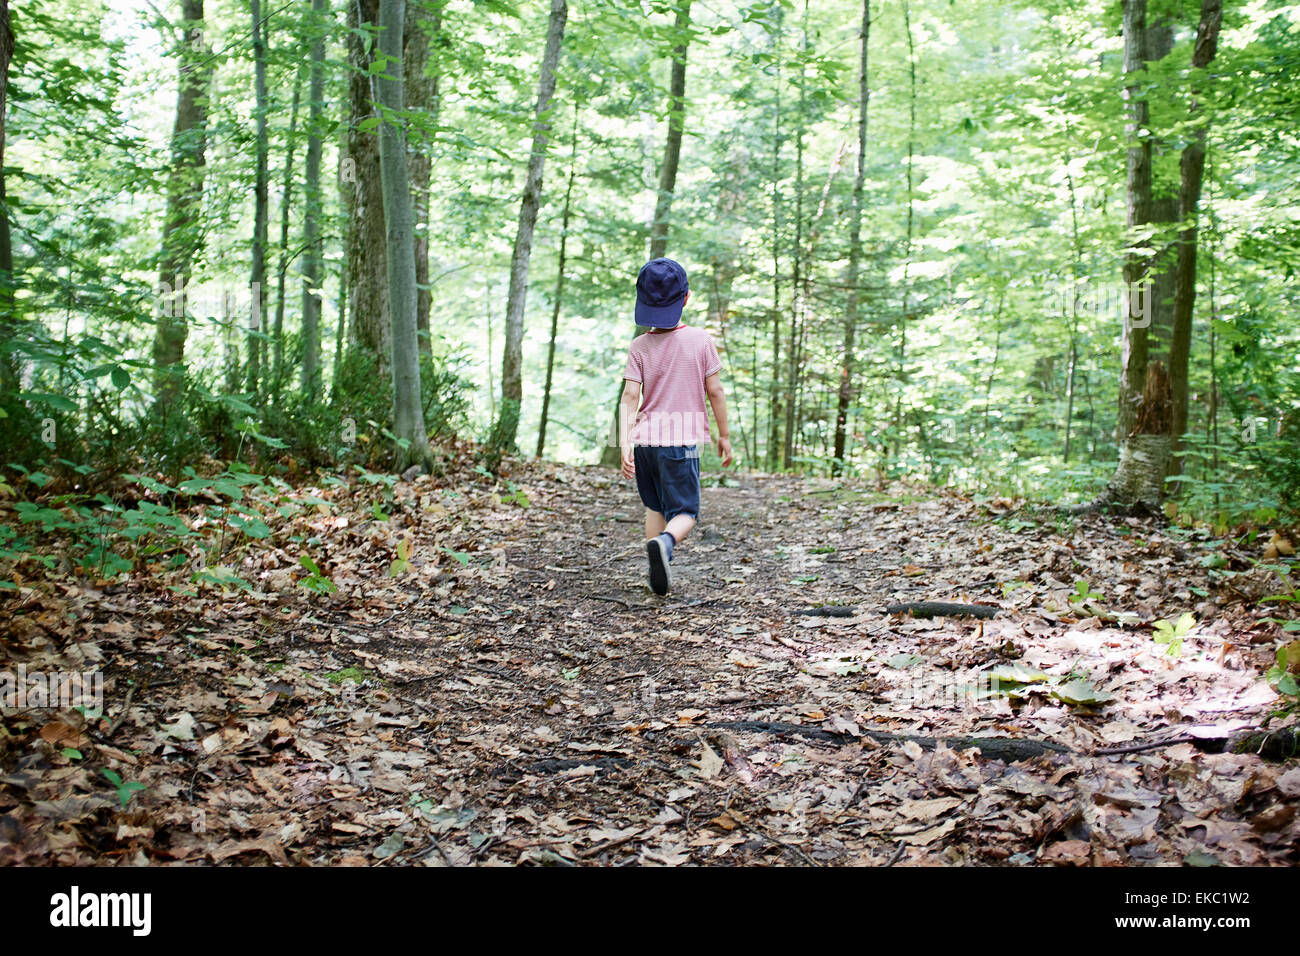 Rear view of boy strolling in forest, Hudson, Quebec, Canada - Stock Image